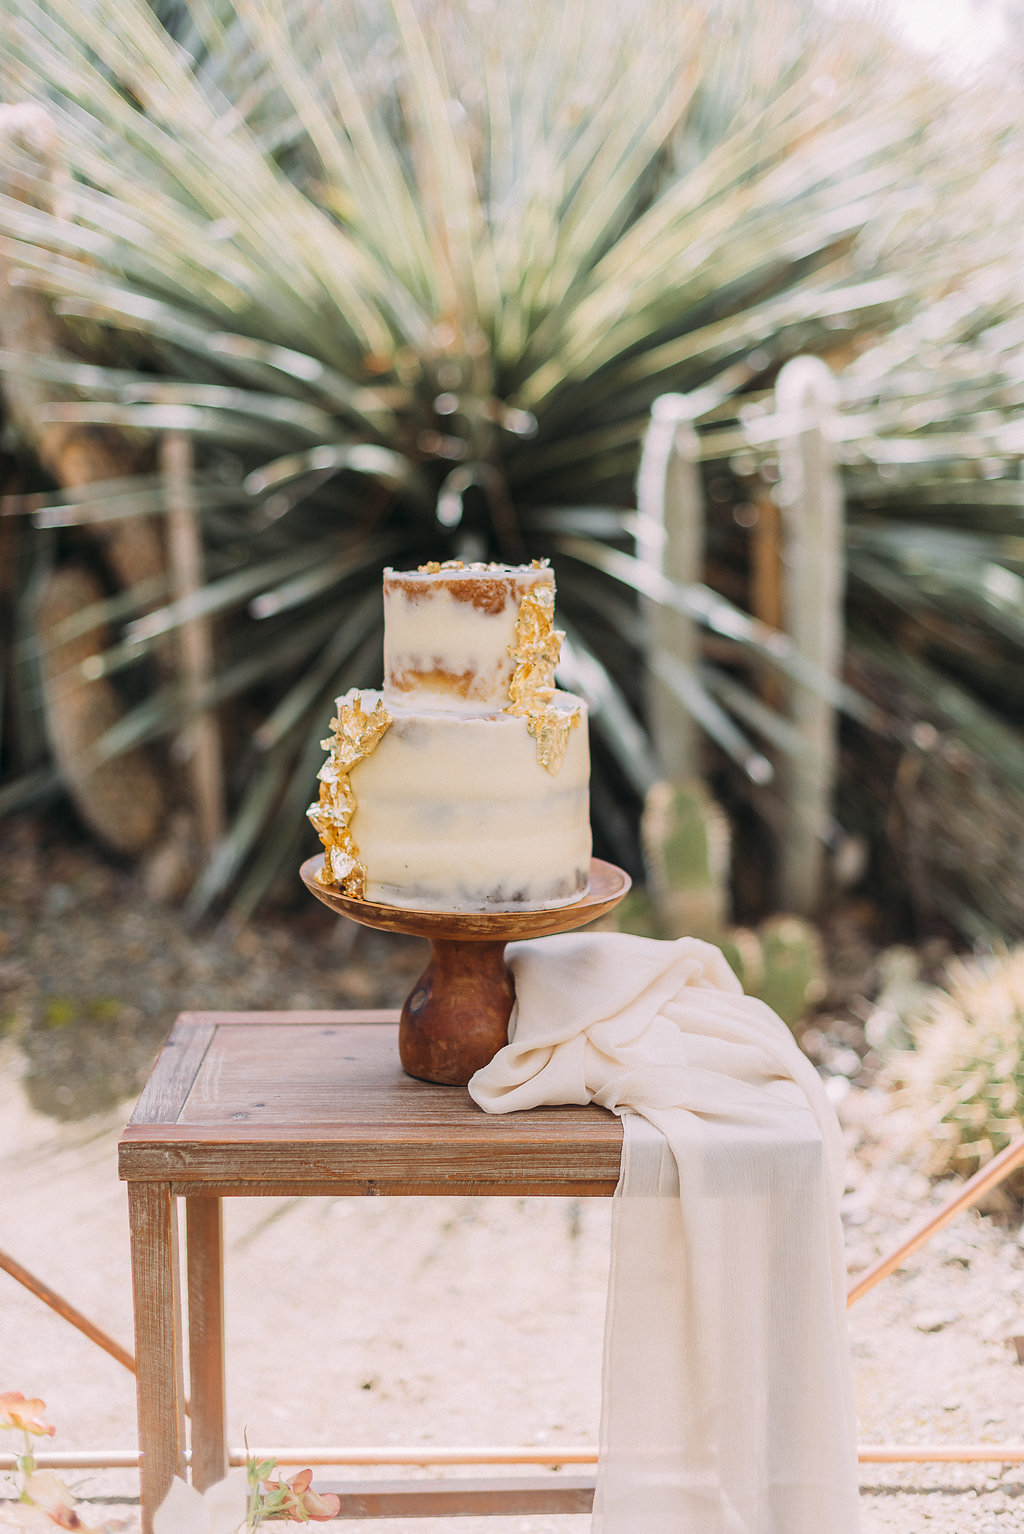 Photo: Danyelle Dee Photography  Cake Design: BTTRCRM Cakery